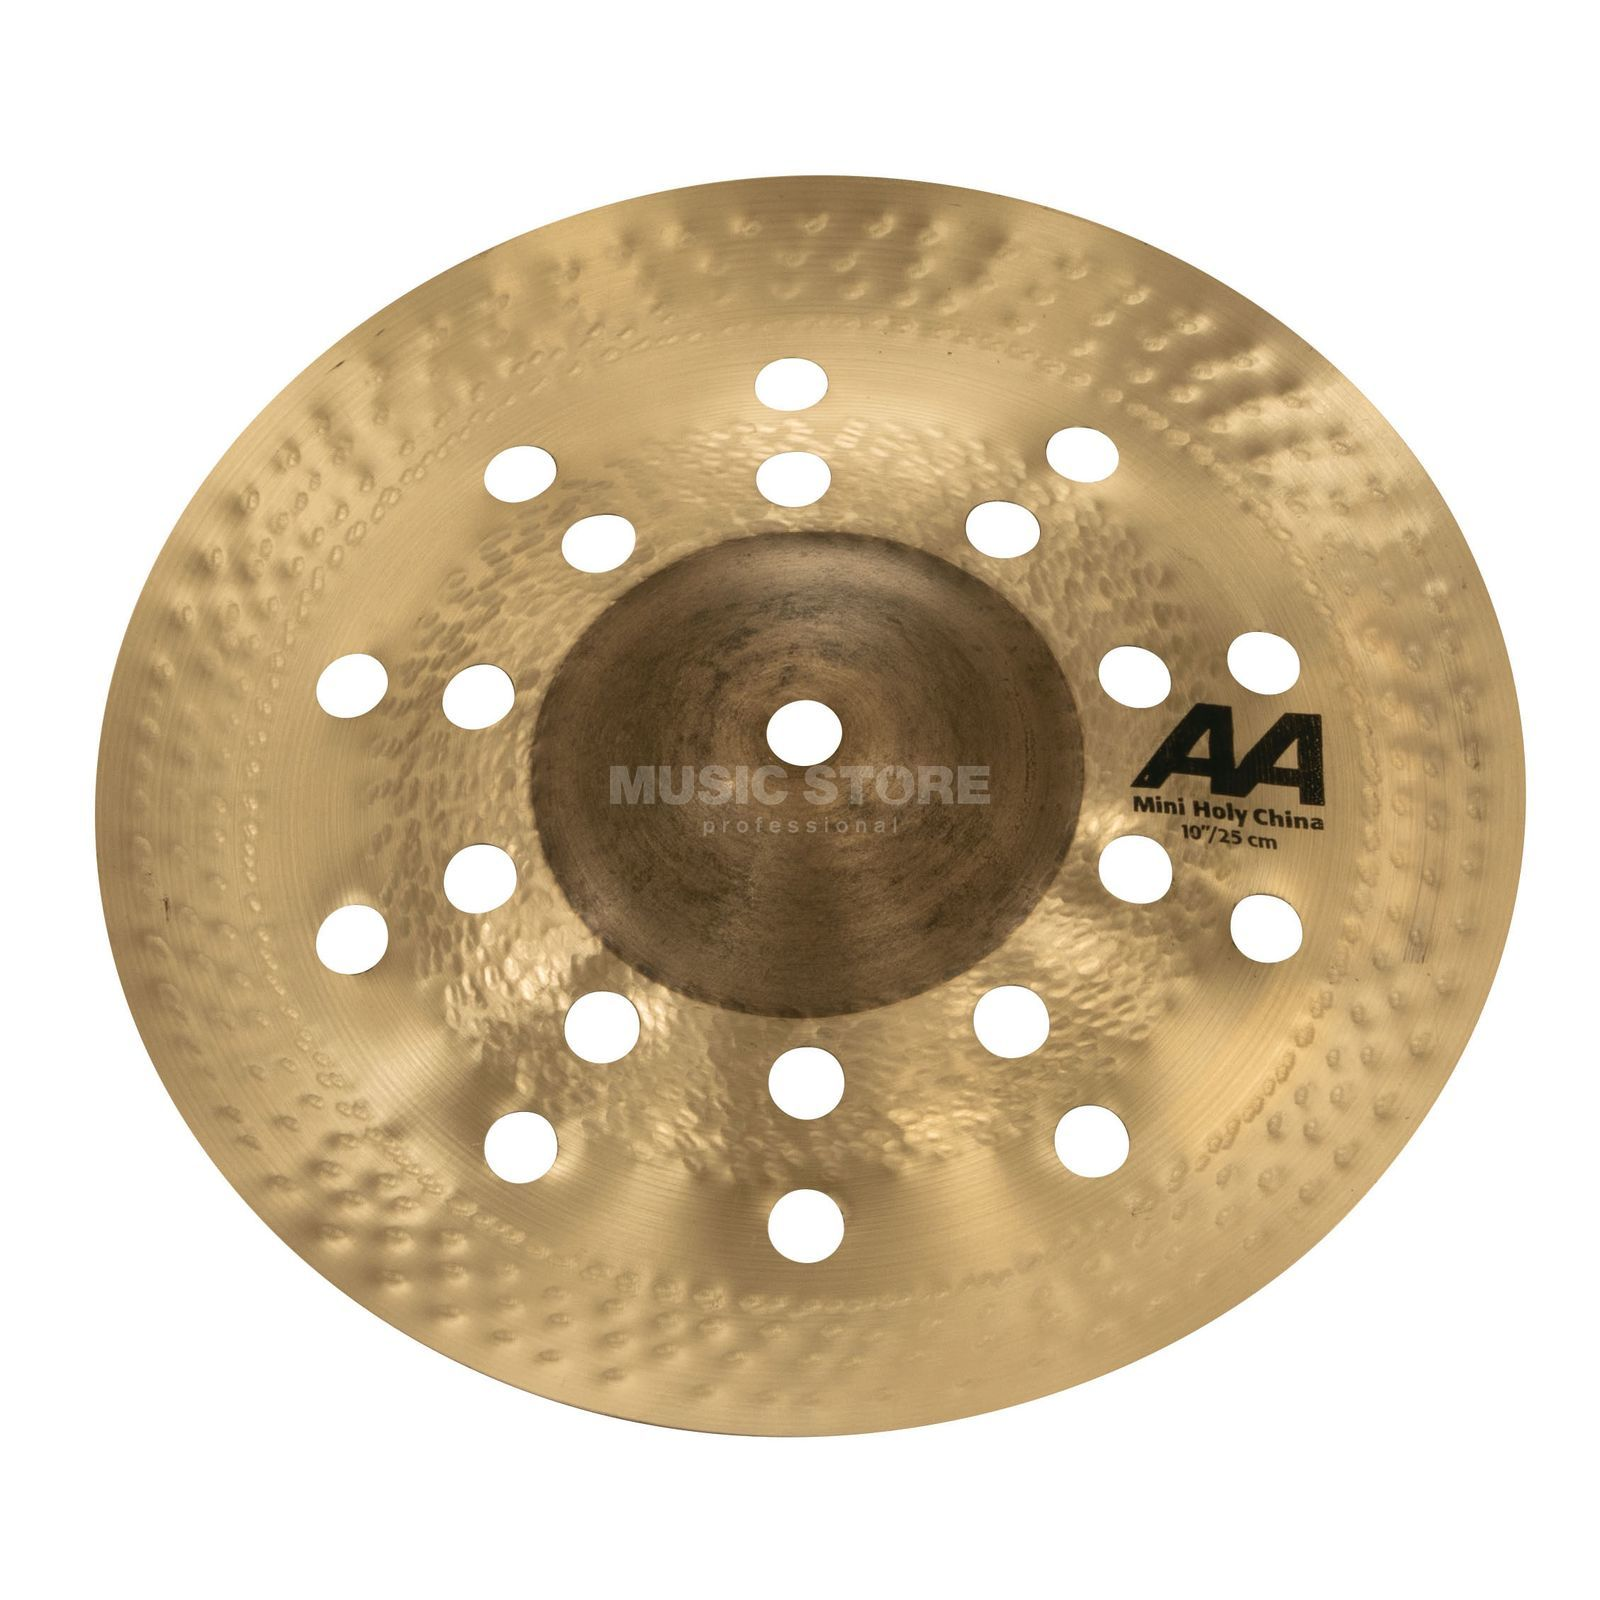 "Sabian AA Mini Holy China 10"" 21016CS Natural Product Image"